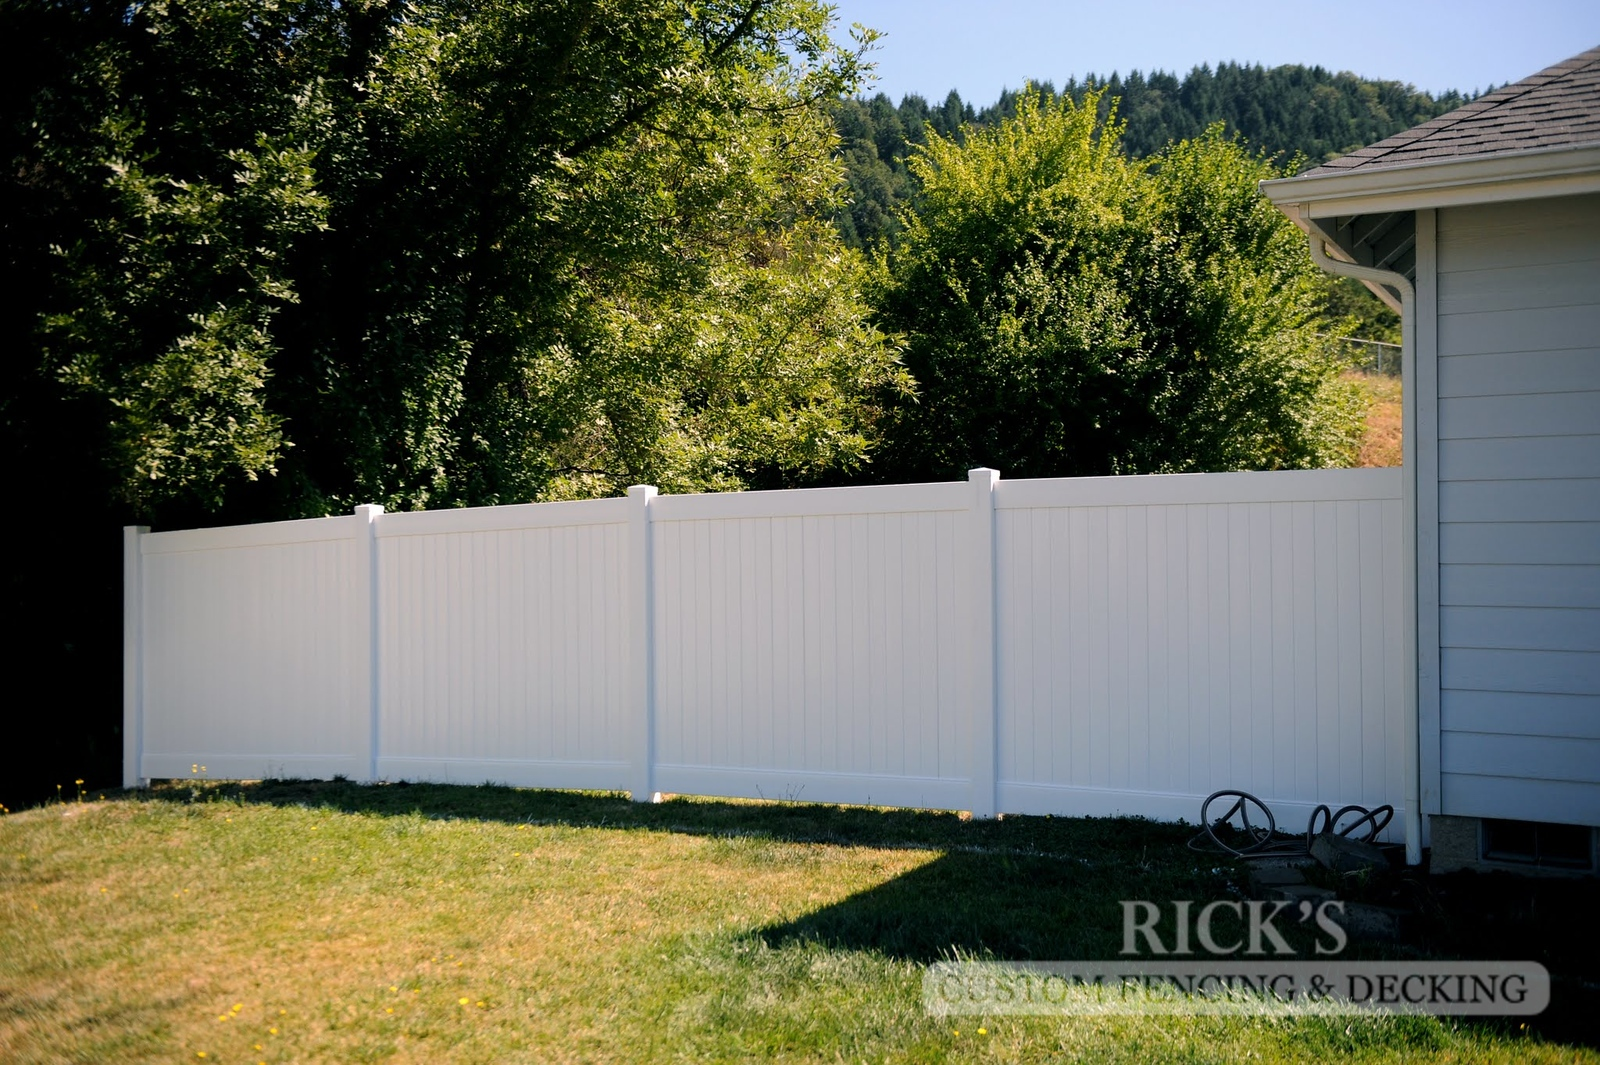 3009 - Vinyl Privacy Fencing